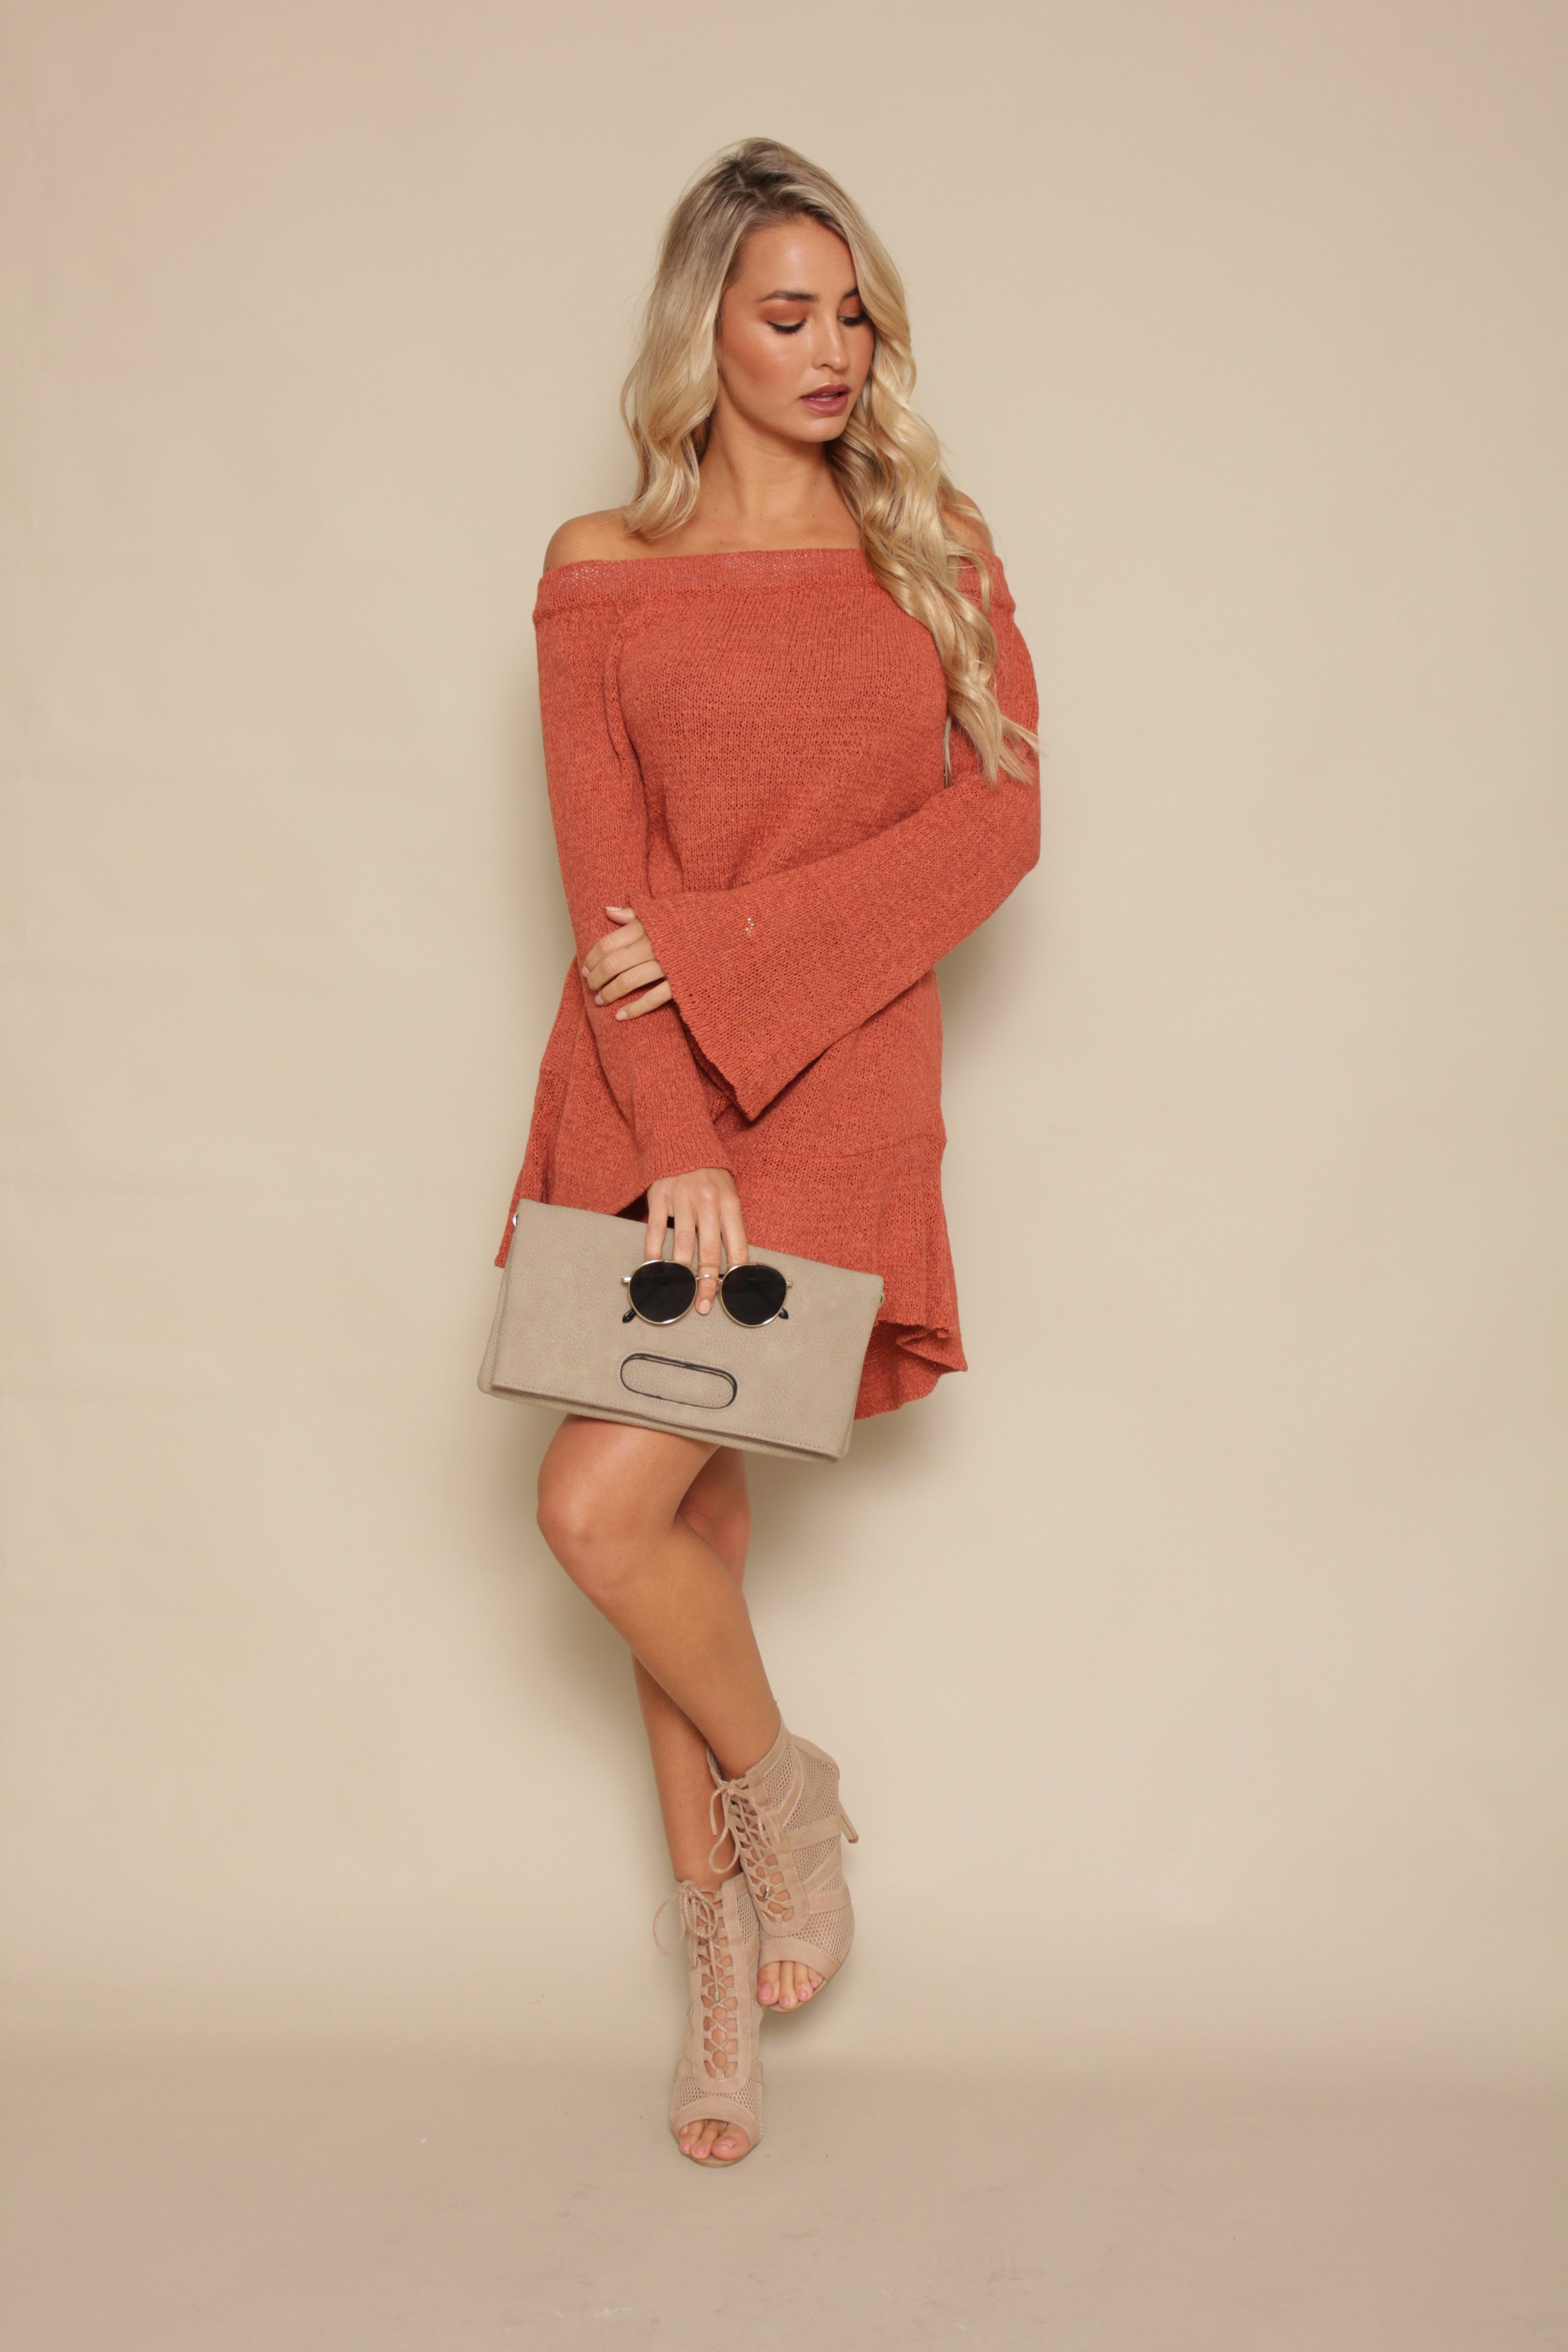 Into My Arms Off Shoulder Dress - Rust